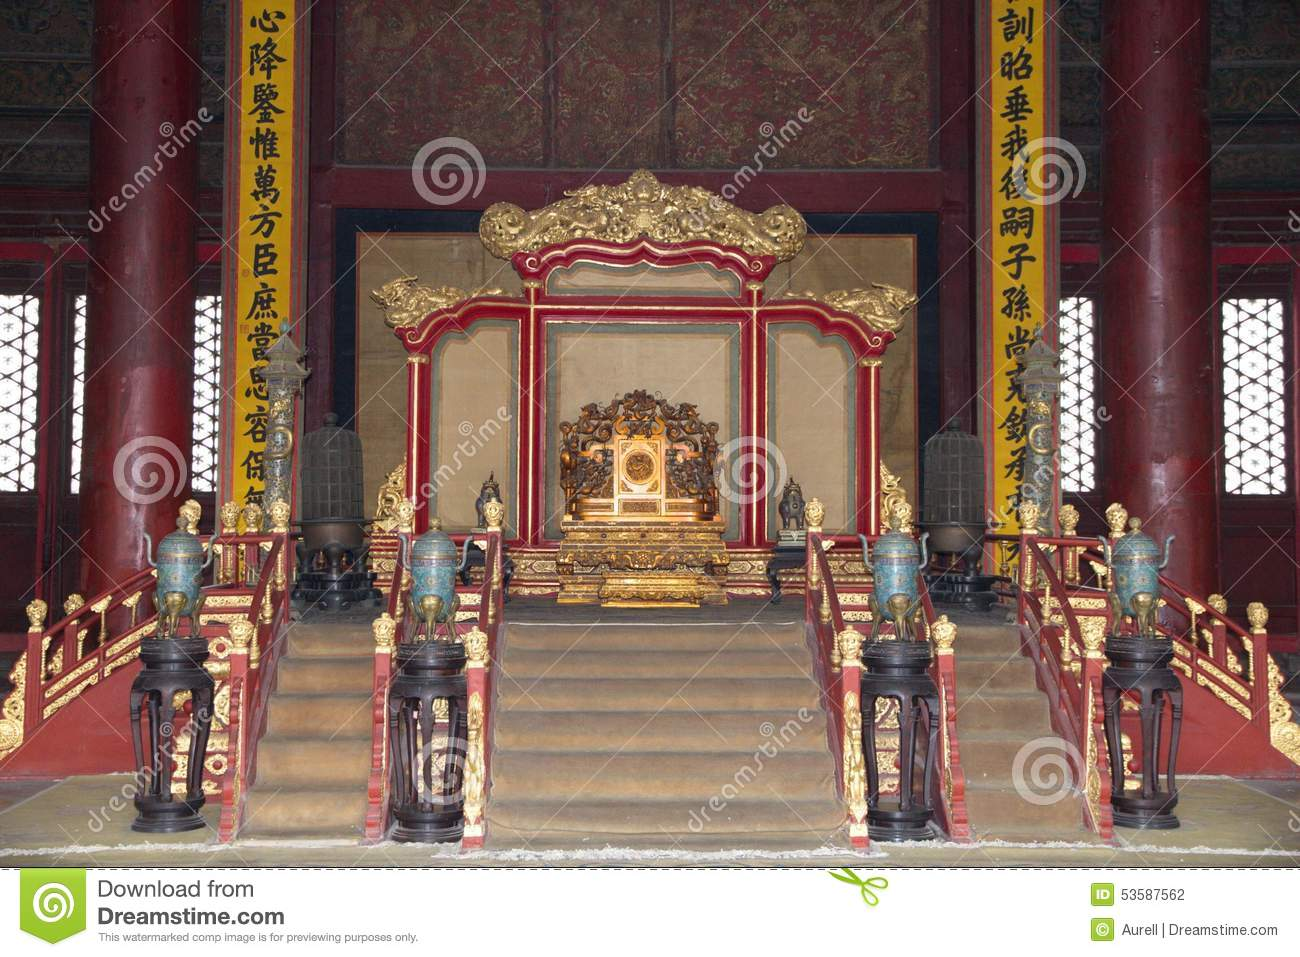 The Emperor's Throne Royalty Free Stock Photography.